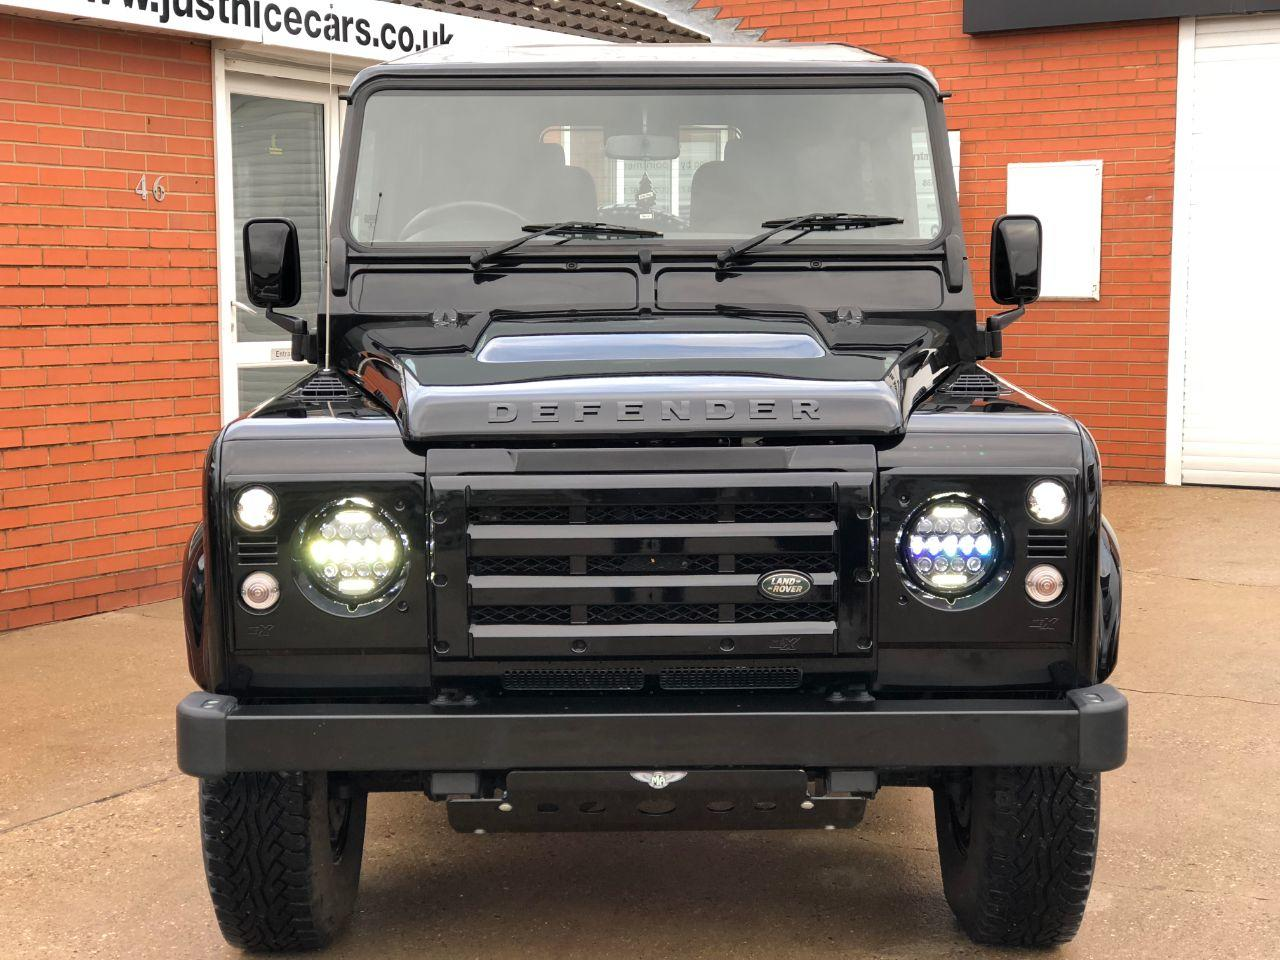 Land Rover Defender 90 XS Station Wagon 2.2 TDCi 4 Seater Four Wheel Drive Diesel Santorini Black